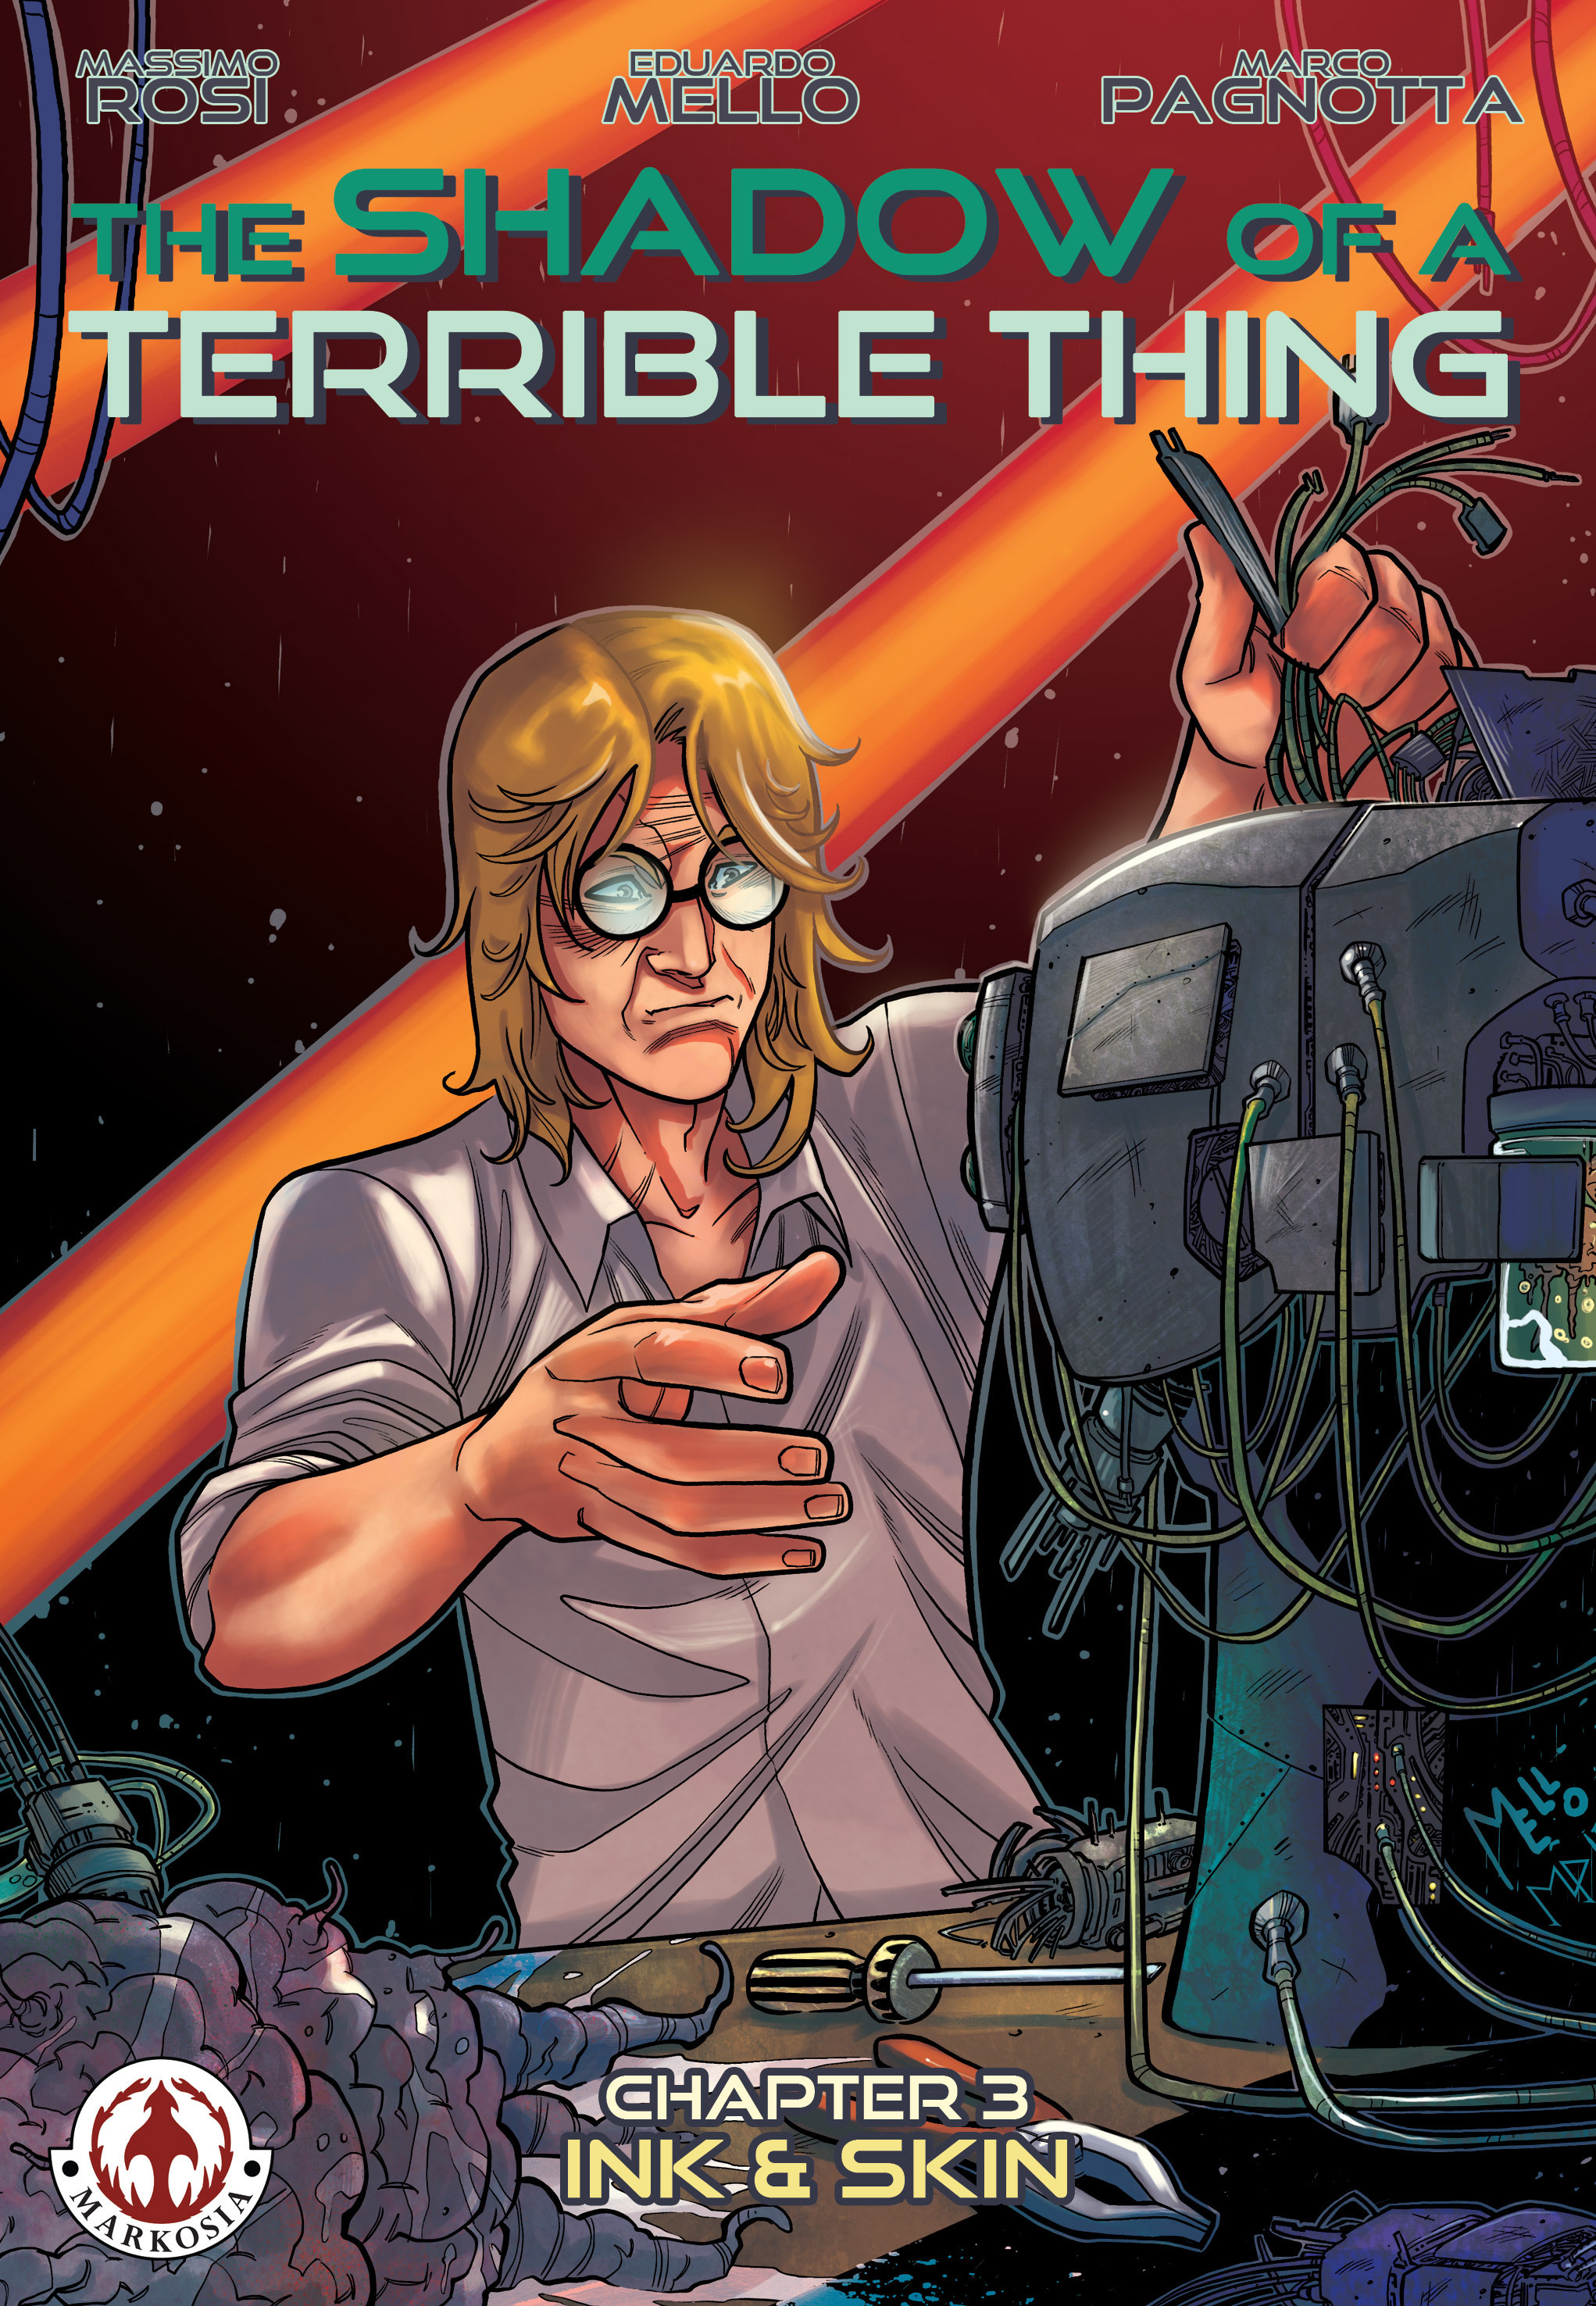 Read online The Shadow of a Terrible Thing comic -  Issue # TPB - 51